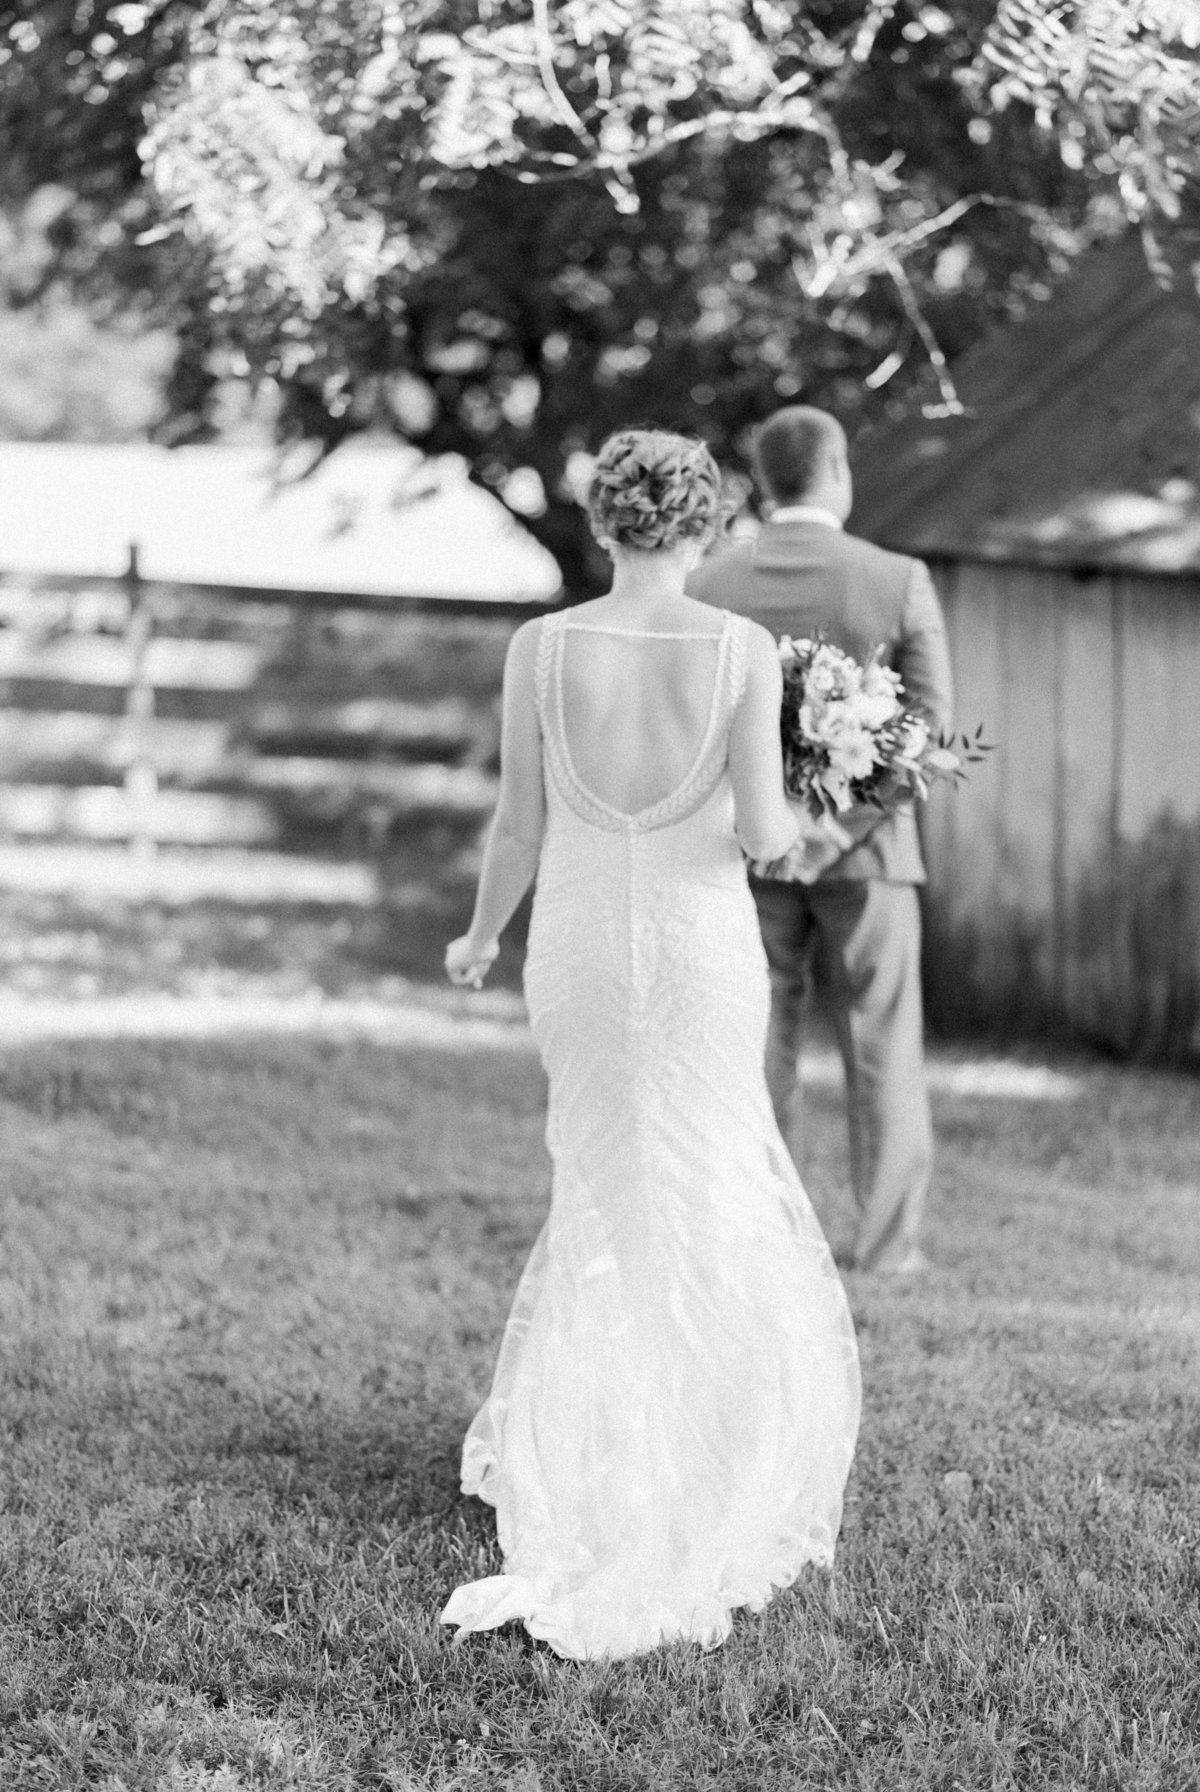 SorellaFarms_VirginiaWeddingPhotographer_BarnWedding_Lynchburgweddingphotographer_DanielleTyler+28(1)